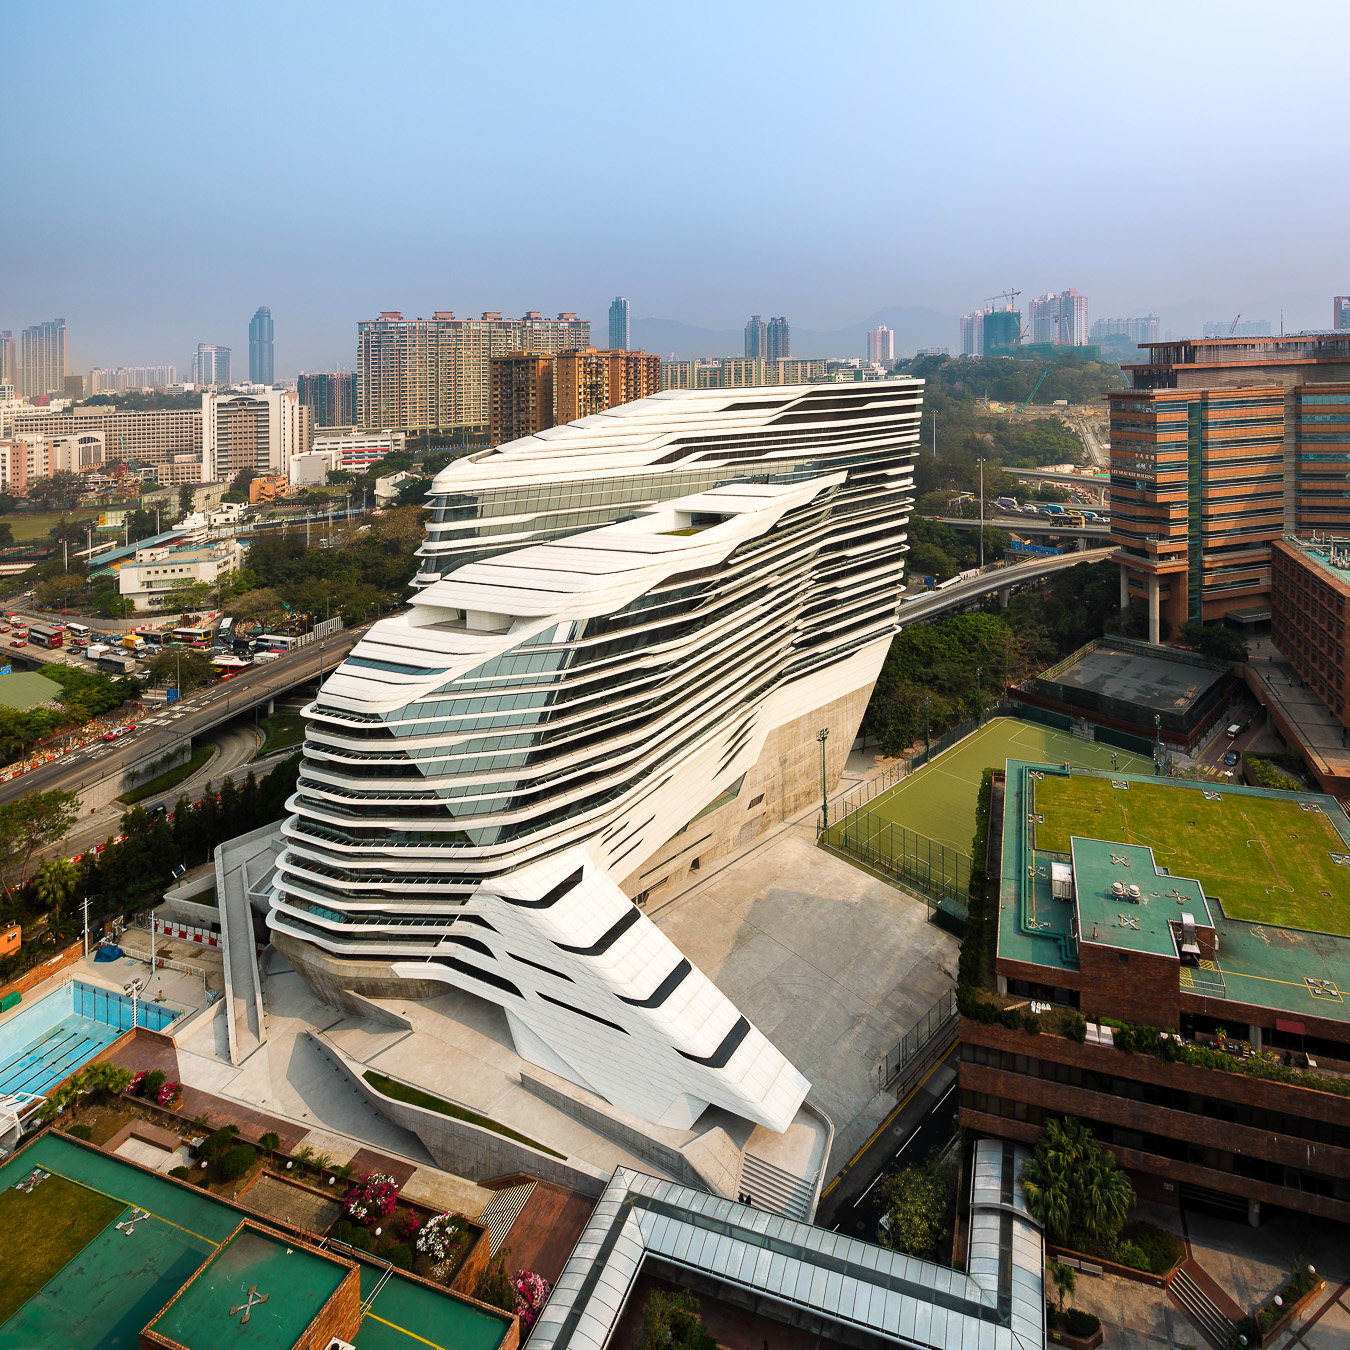 doublespace_photo_zaha_hadid_innovation_tower-171.jpg